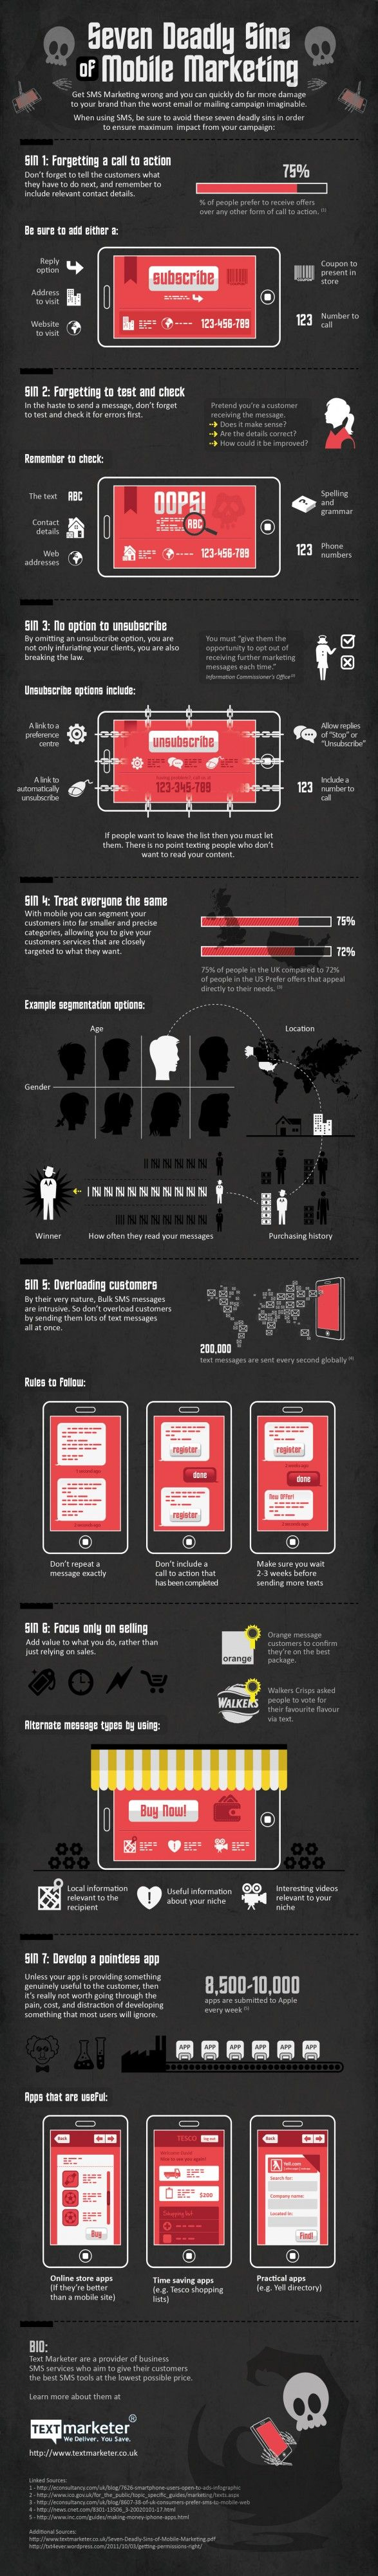 7 Deadly Sins of Mobile MarketingSeven Dead Sinful, Sms Mobiles, Social Media, Marketing Sms, Business Marketing, Socialmedia, Mobile Marketing, Mobiles Marketing, Marketing Infographic